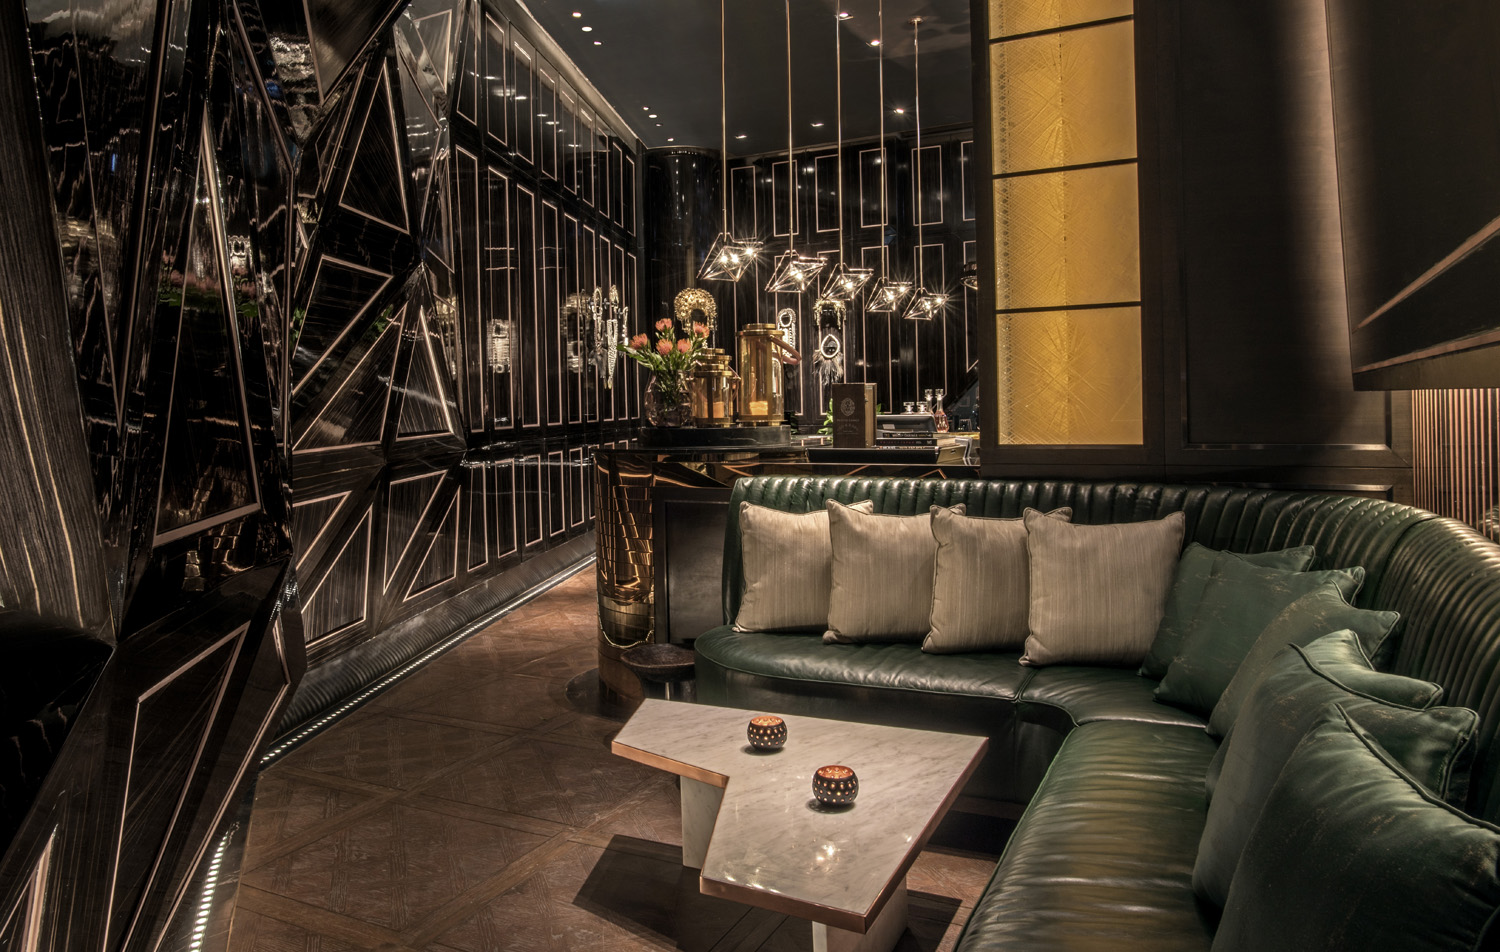 The Whisky Room at The Penthouse Bar + Grill in Park Hyatt Bangkok